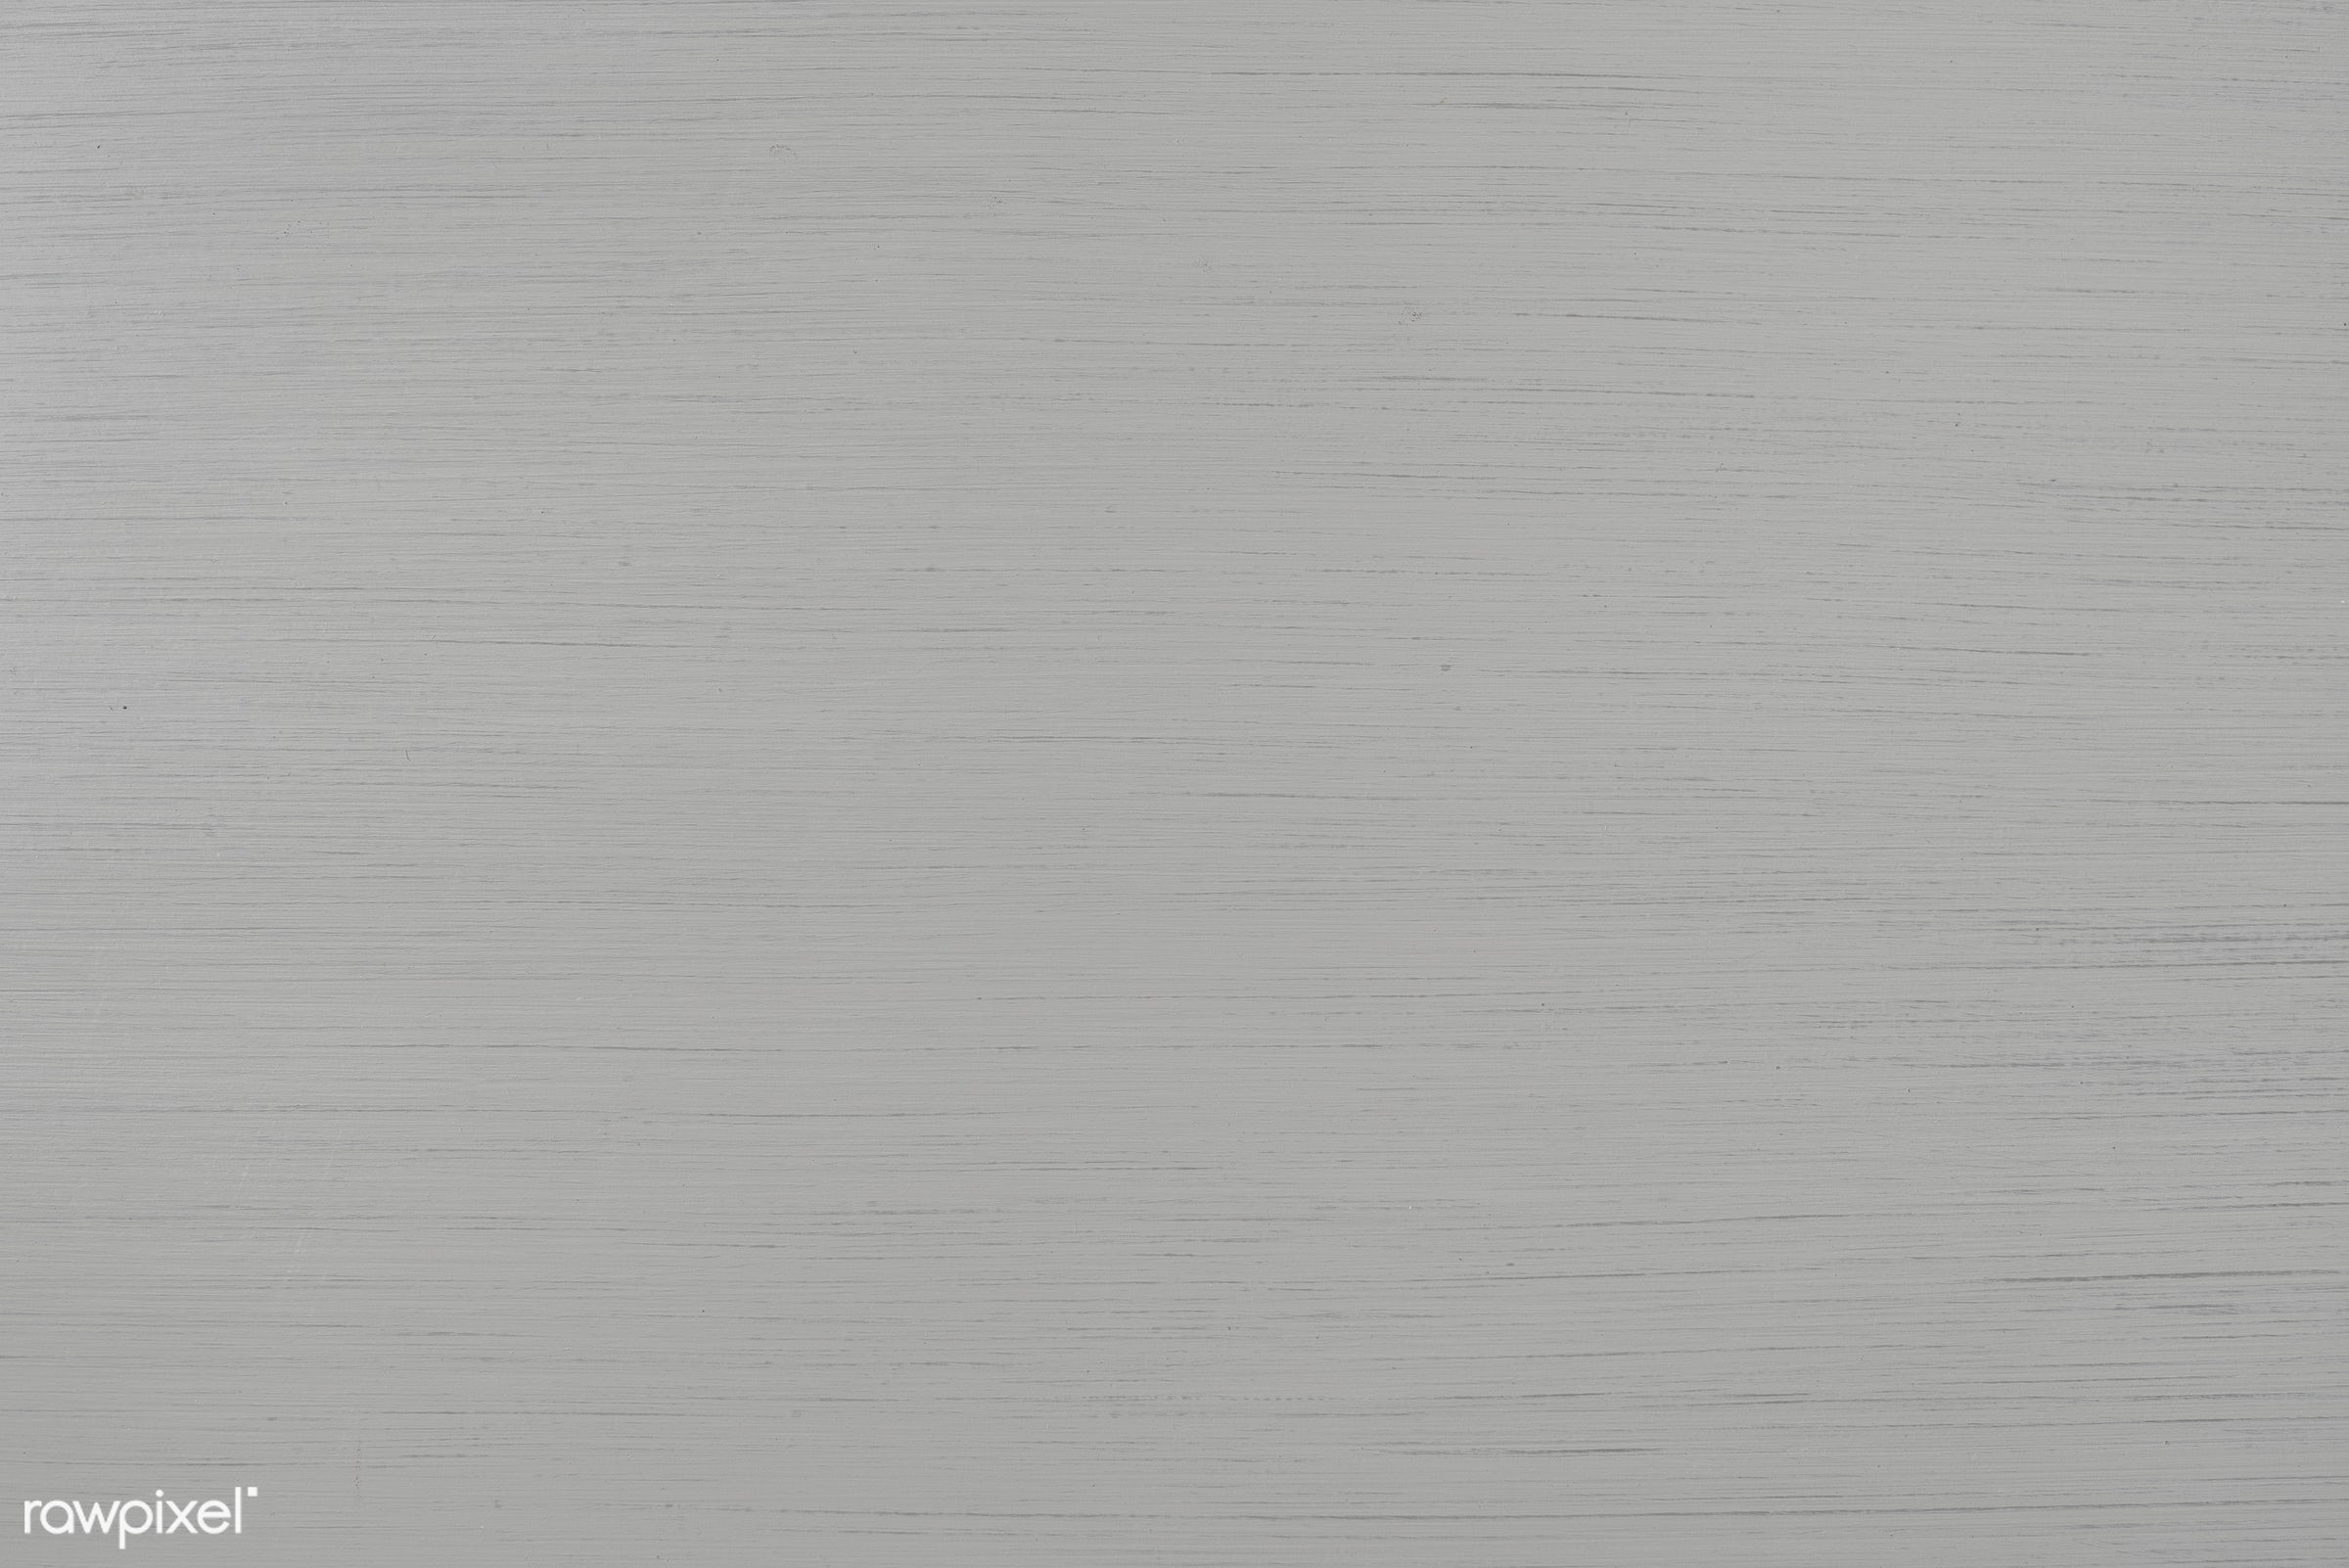 Grey Wooden Texture Wallpaper - texture, wood, design, pattern, abstract, attach, attached, backdrop, background, board,...